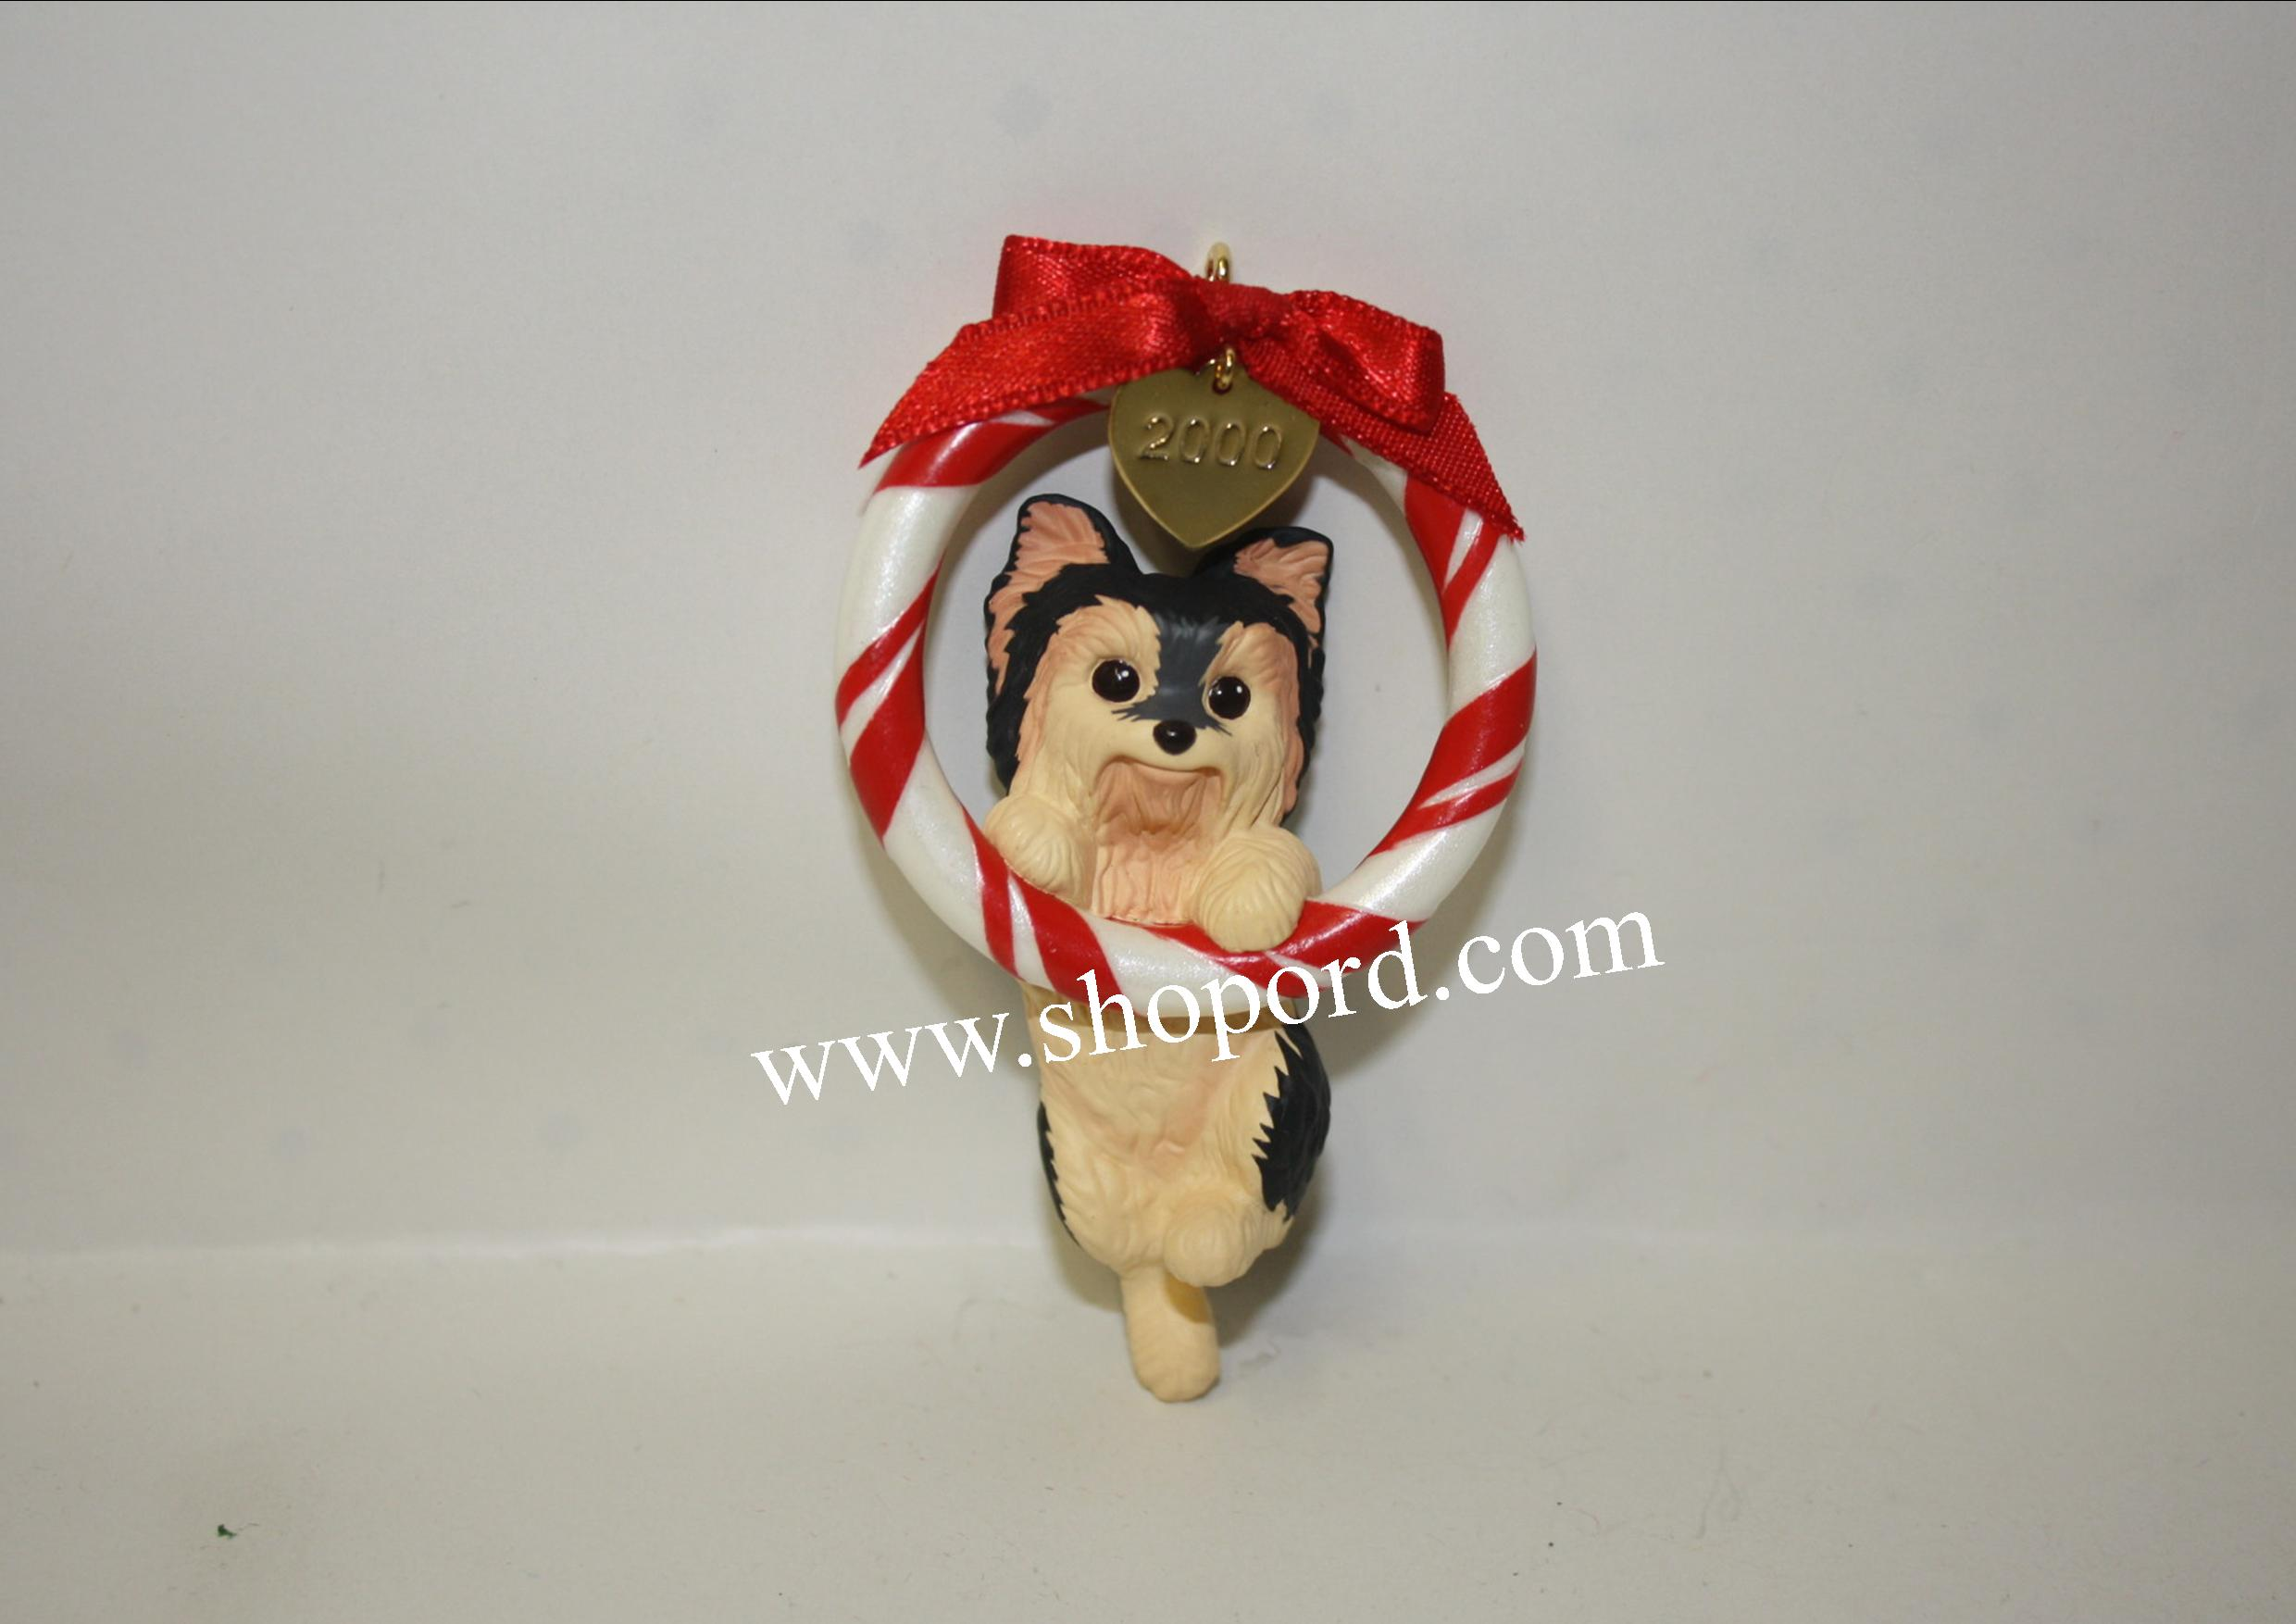 Hallmark 2000 Puppy Love Ornament 10th In The Series QX6554